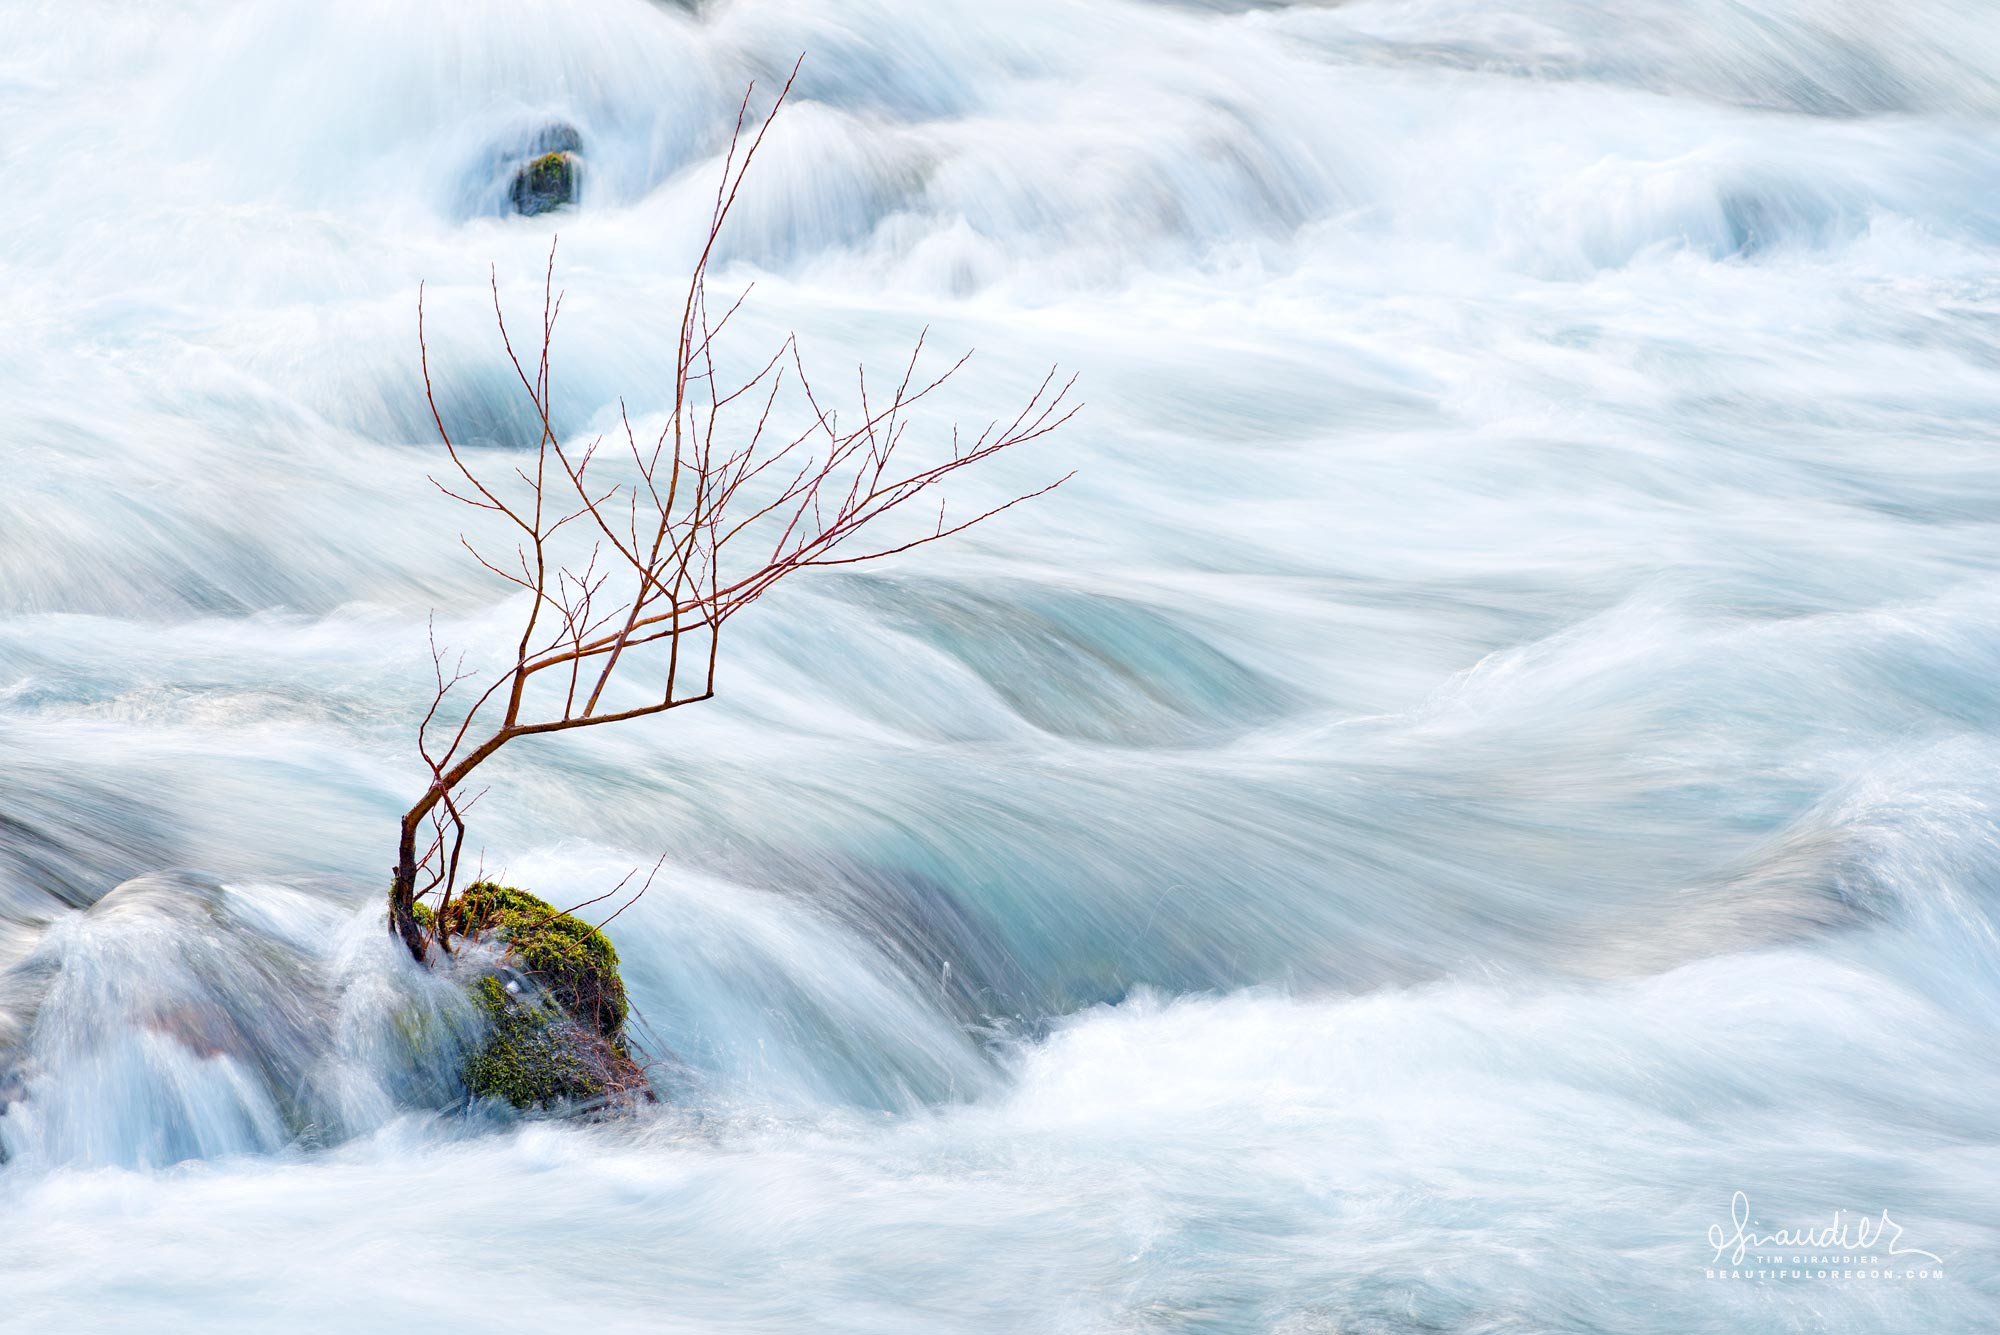 A willow clings to bedrock rapids along the North Fork Willamette River. Willamette National Forest, Oregon West Cascade.